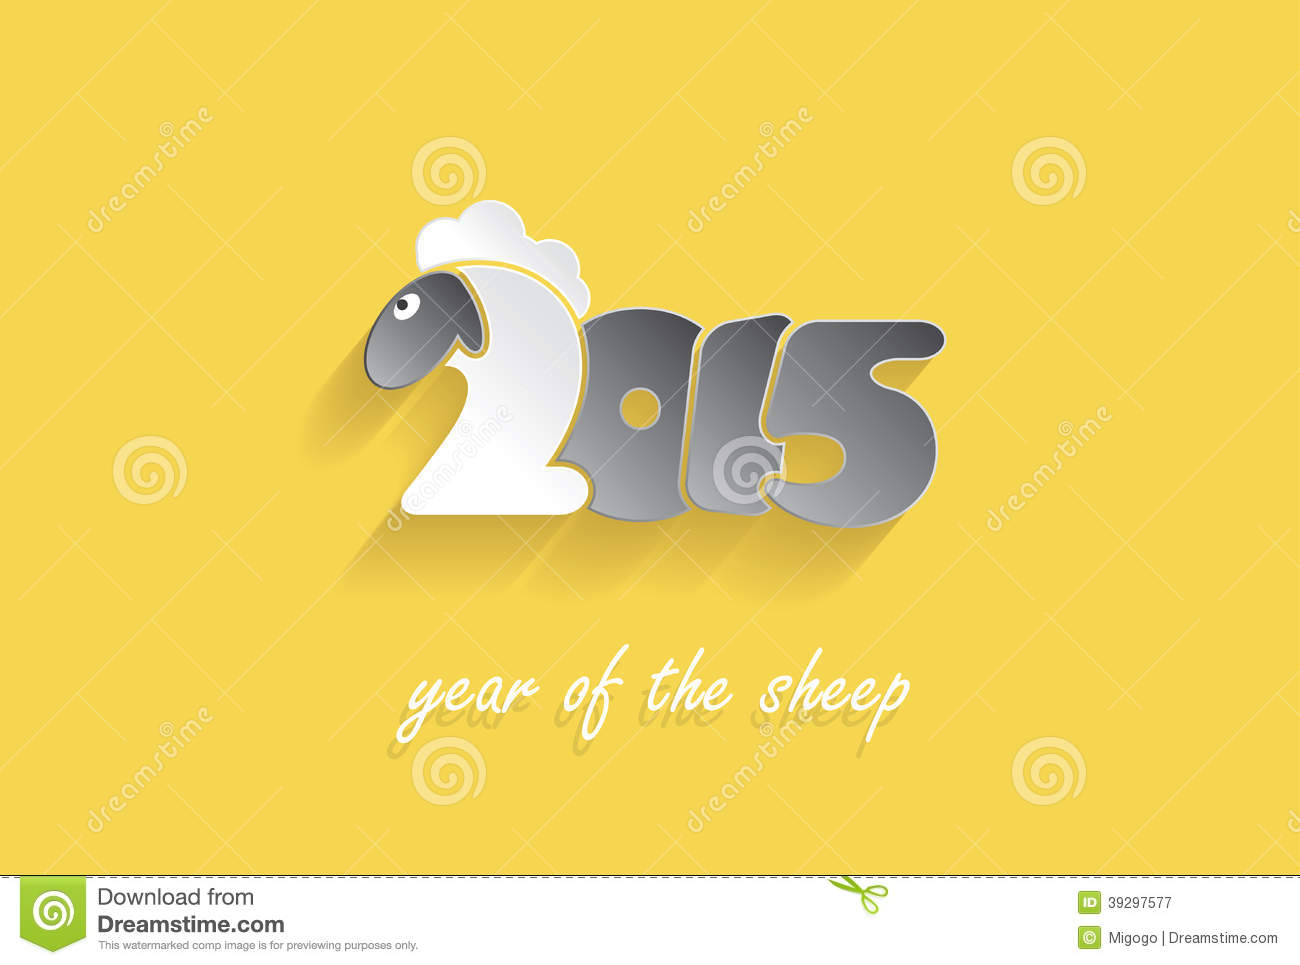 Creative New Year Greetings Merry Christmas And Happy New Year 2018